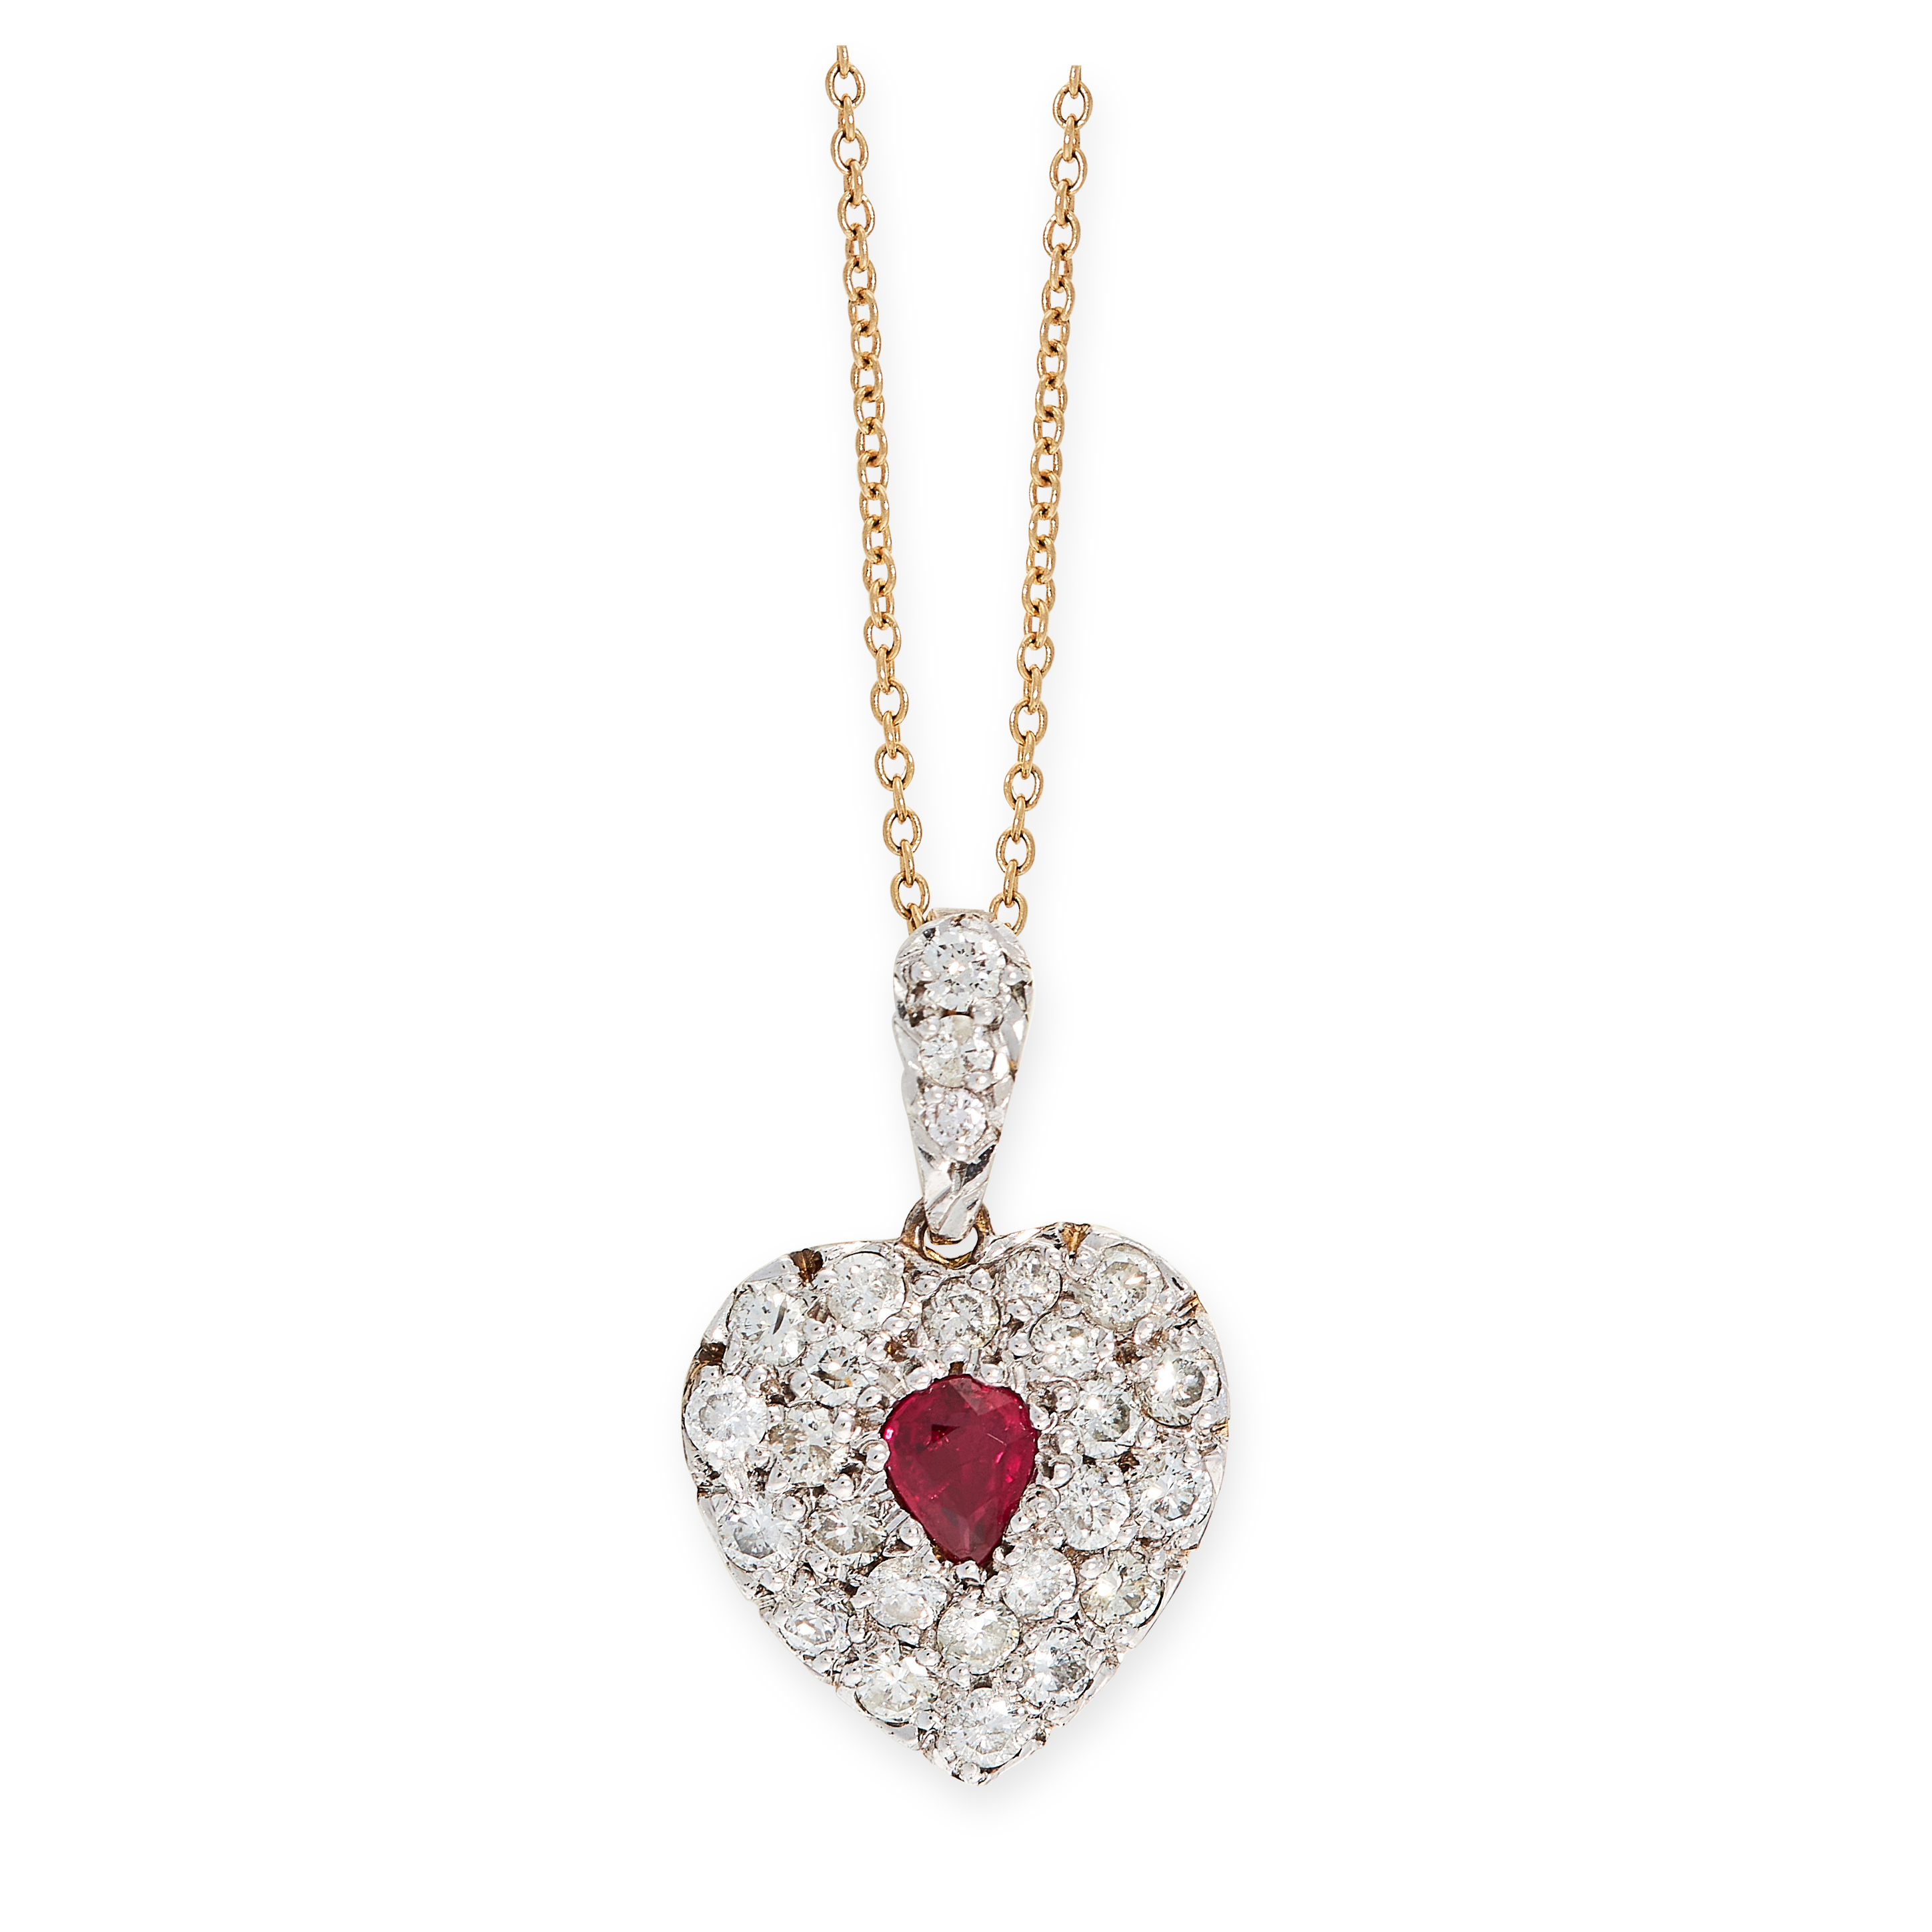 A RUBY AND DIAMOND HEART PENDANT in 15ct yellow gold, set with a pear cut ruby within a heart shaped